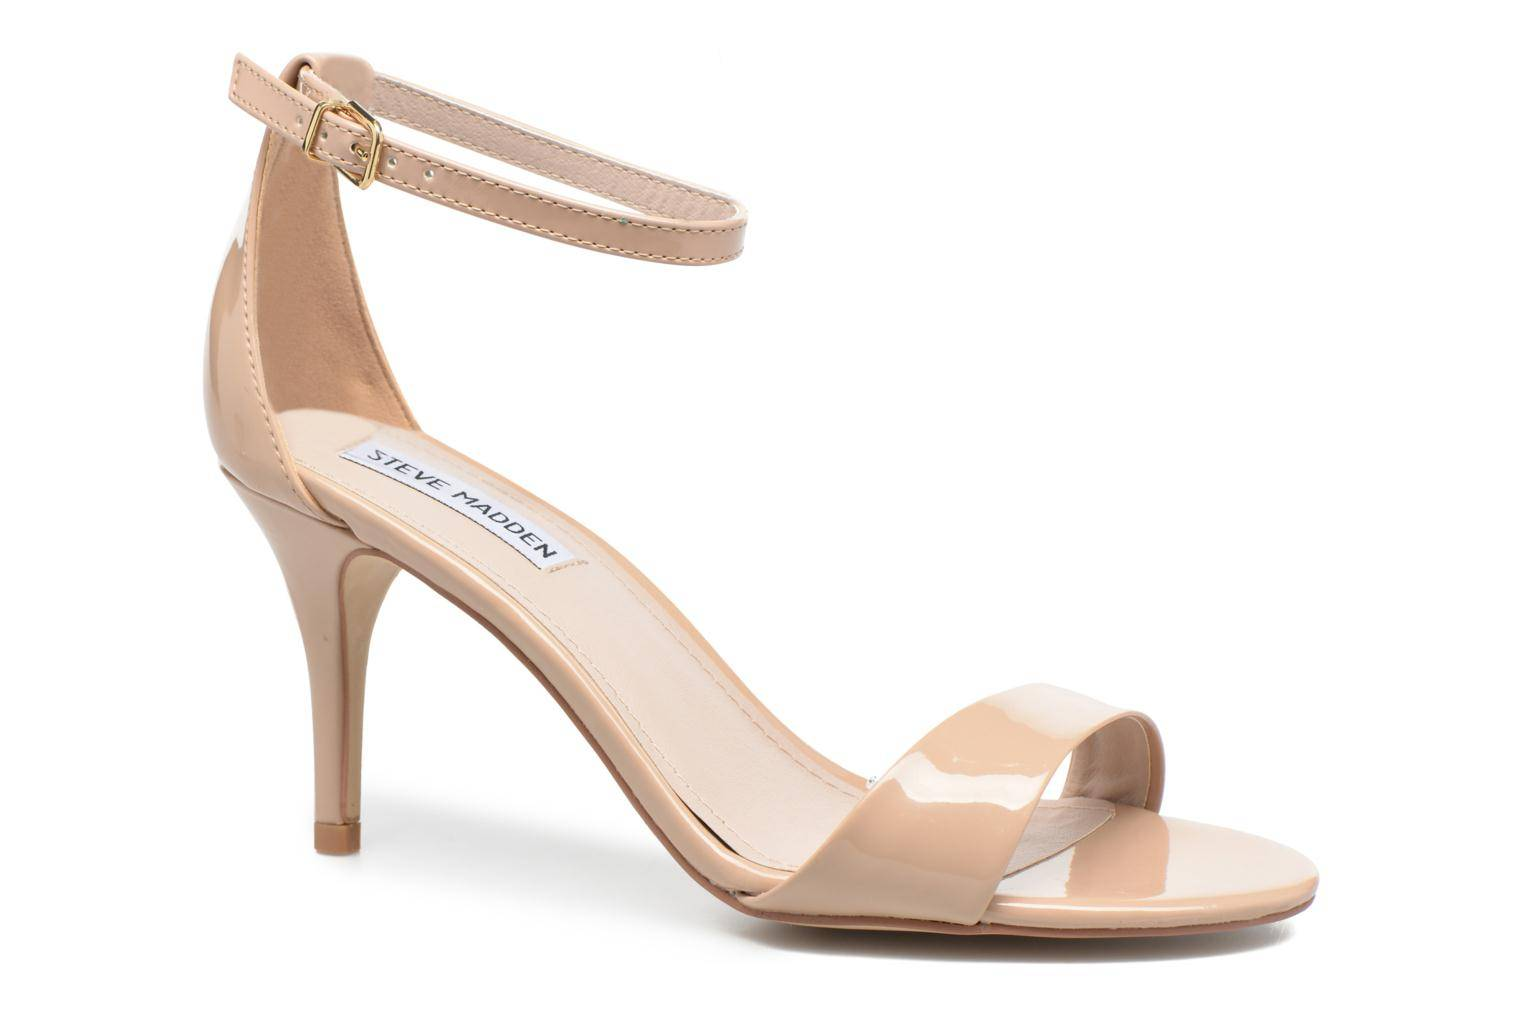 Steve Madden - Sillly Sandal by  - Sandaalit Naisille  / Beige